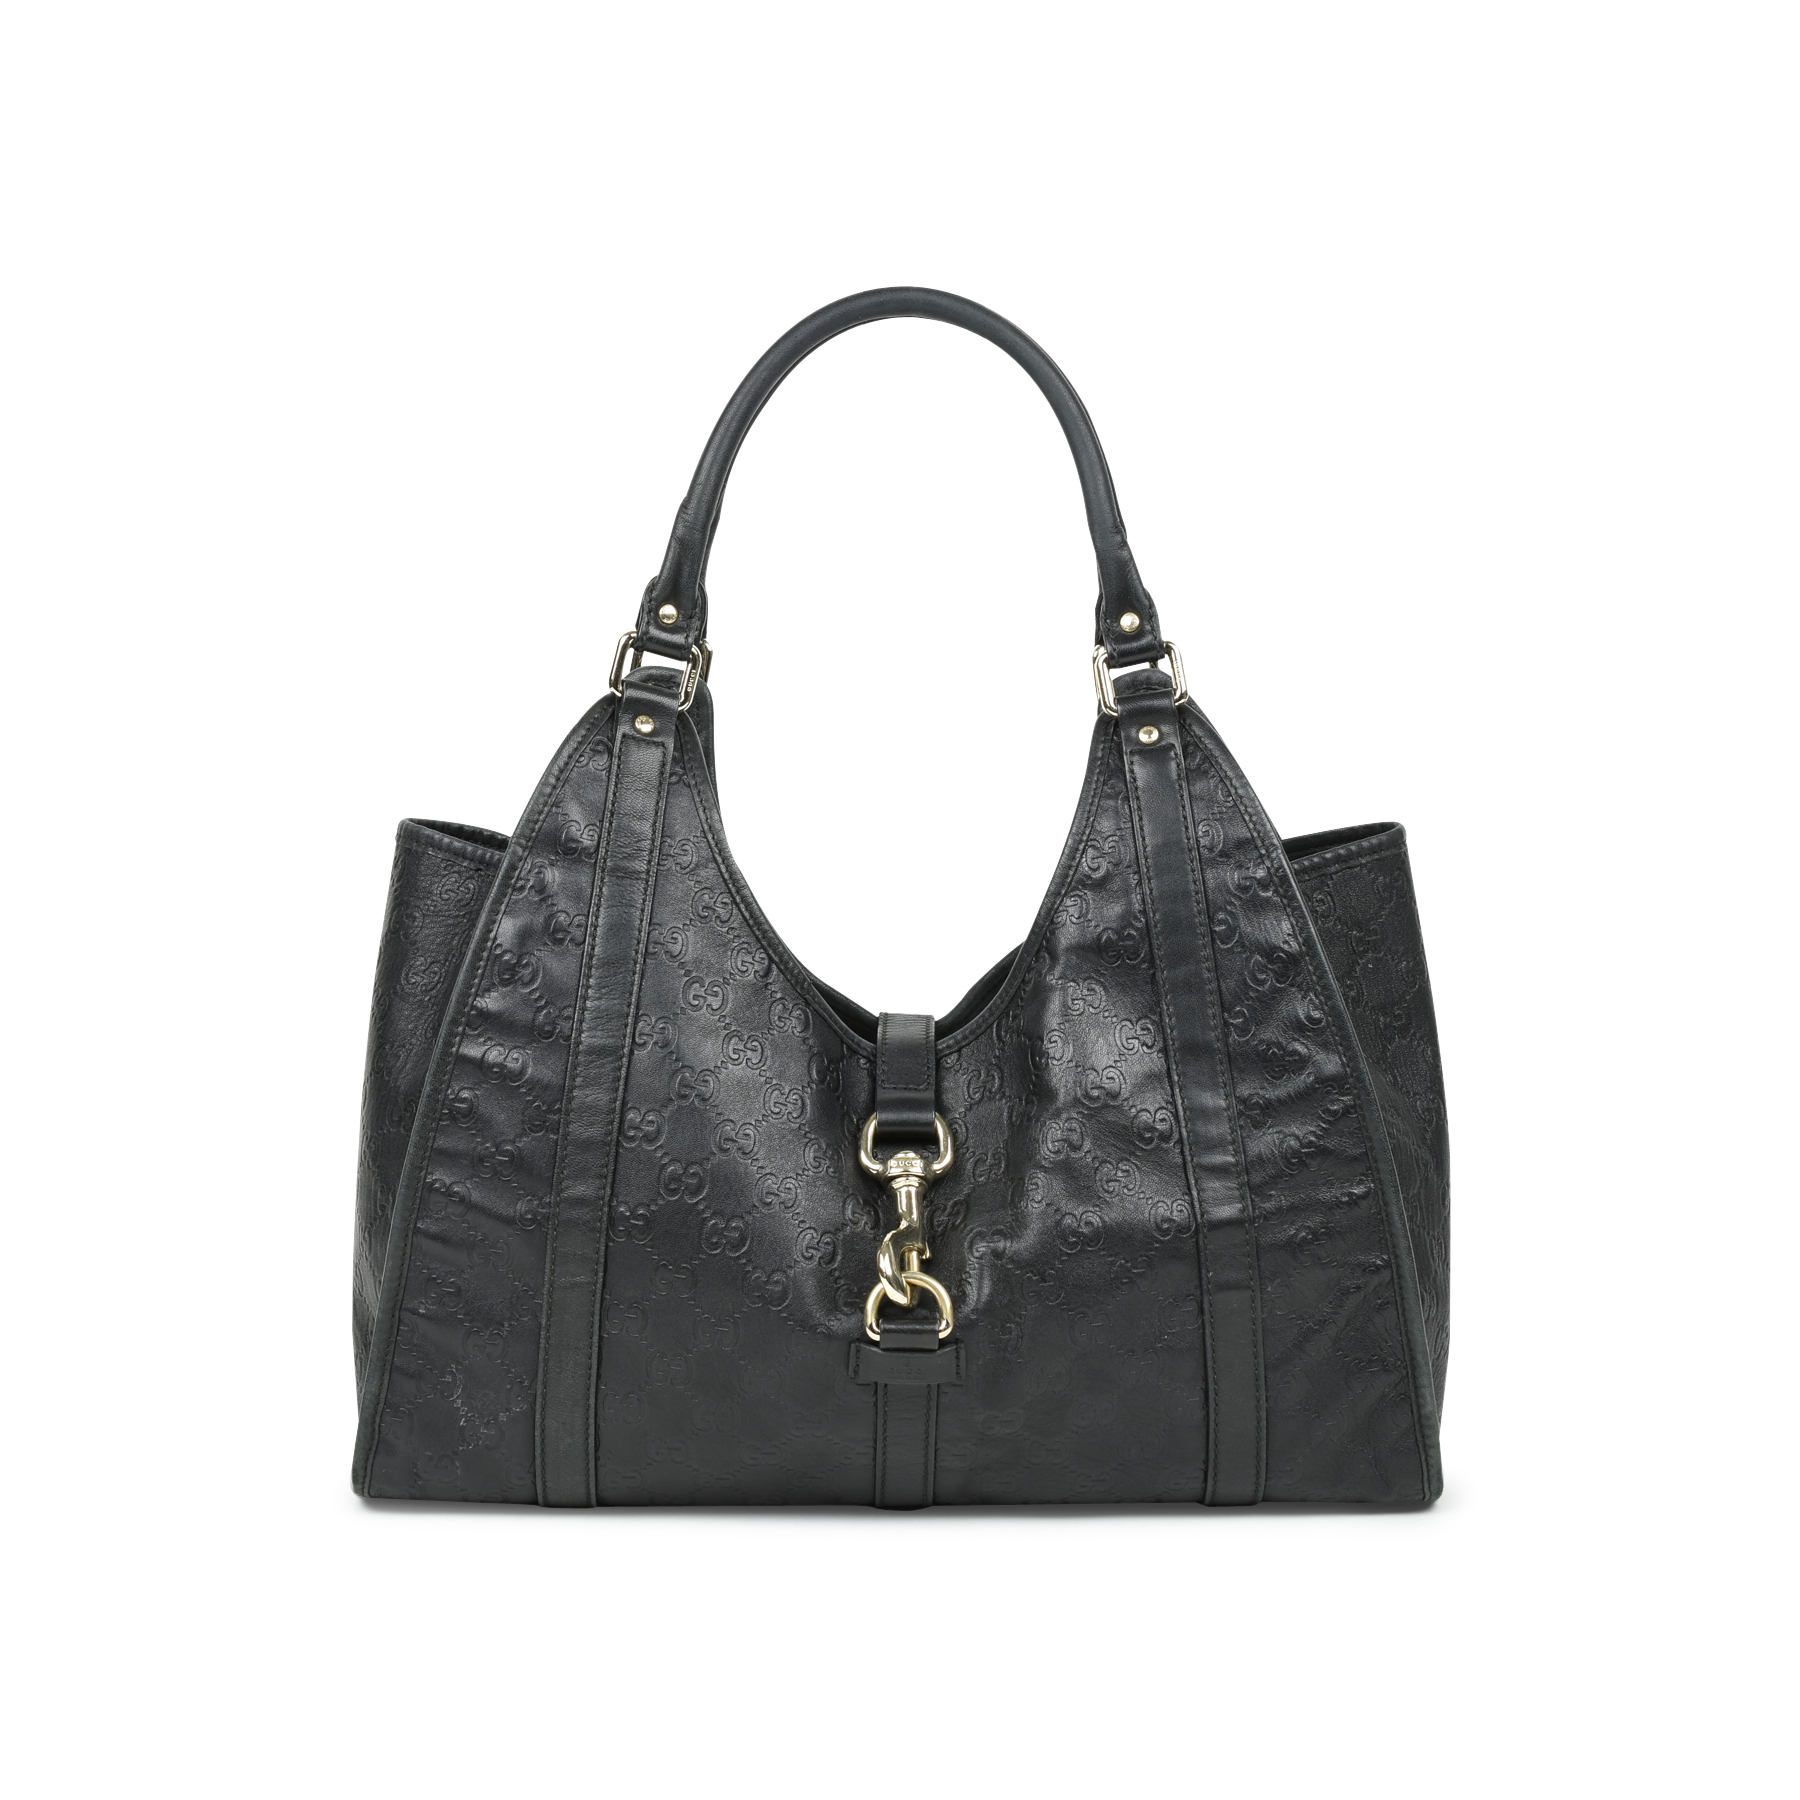 b41506284a91 Authentic Second Hand Gucci Guccissima Joy Medium Shoulder Bag  (PSS-516-00002) | THE FIFTH COLLECTION